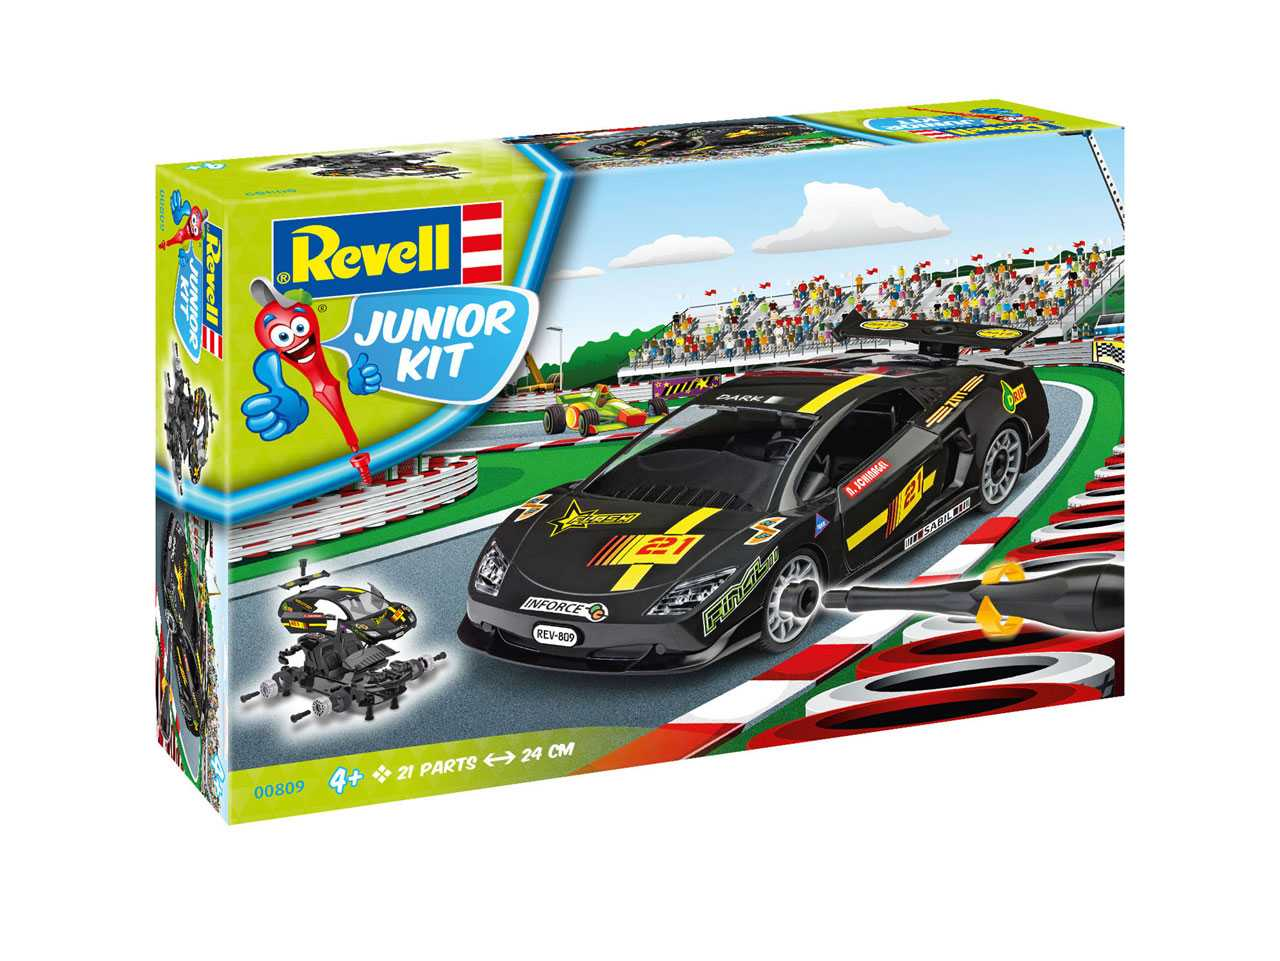 1:20 Racing Car Black (Junior Kit)